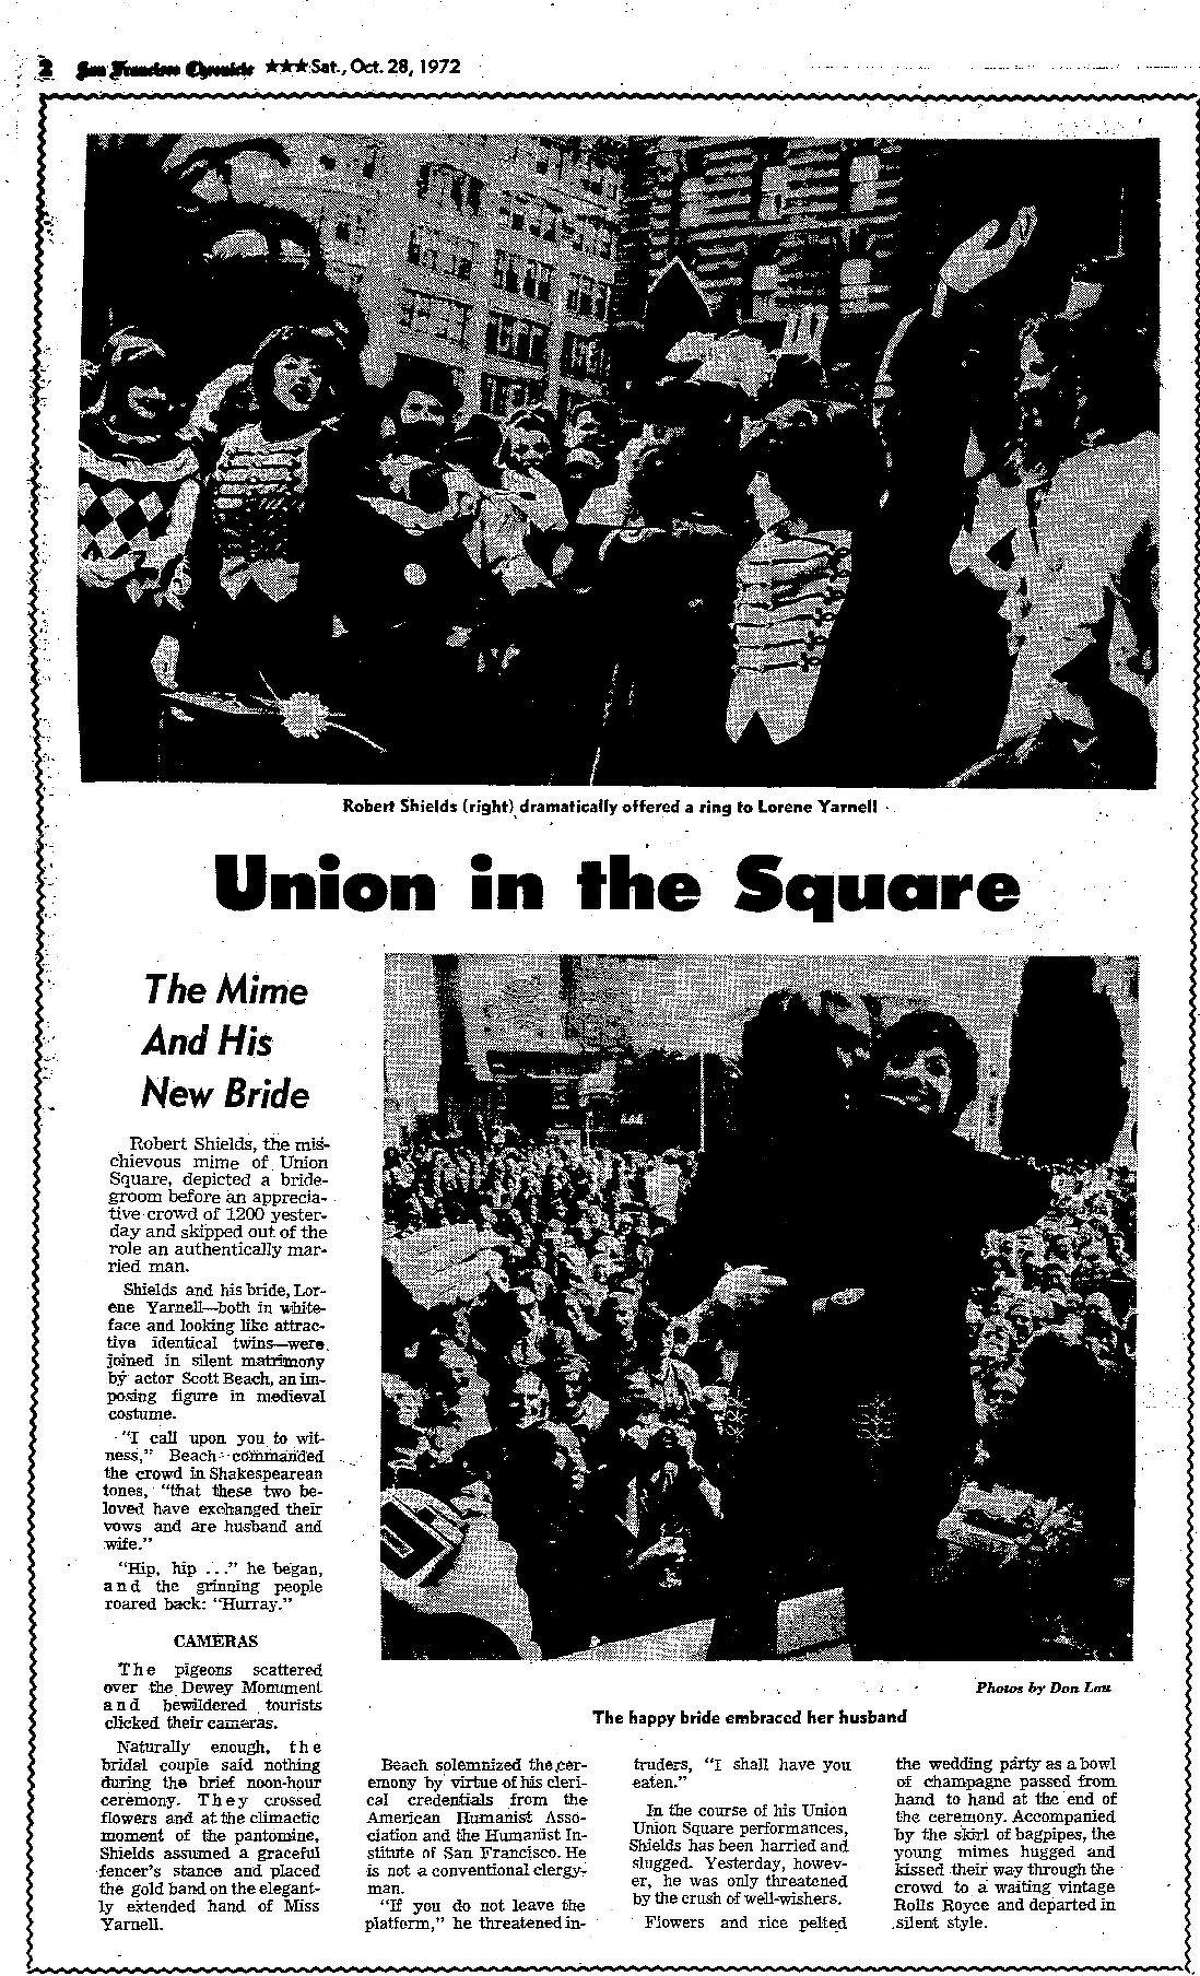 Oct. 28, 1972 Chronicle article on Robert Shields, right, and Lorene Yarnell marrying in Union Square.